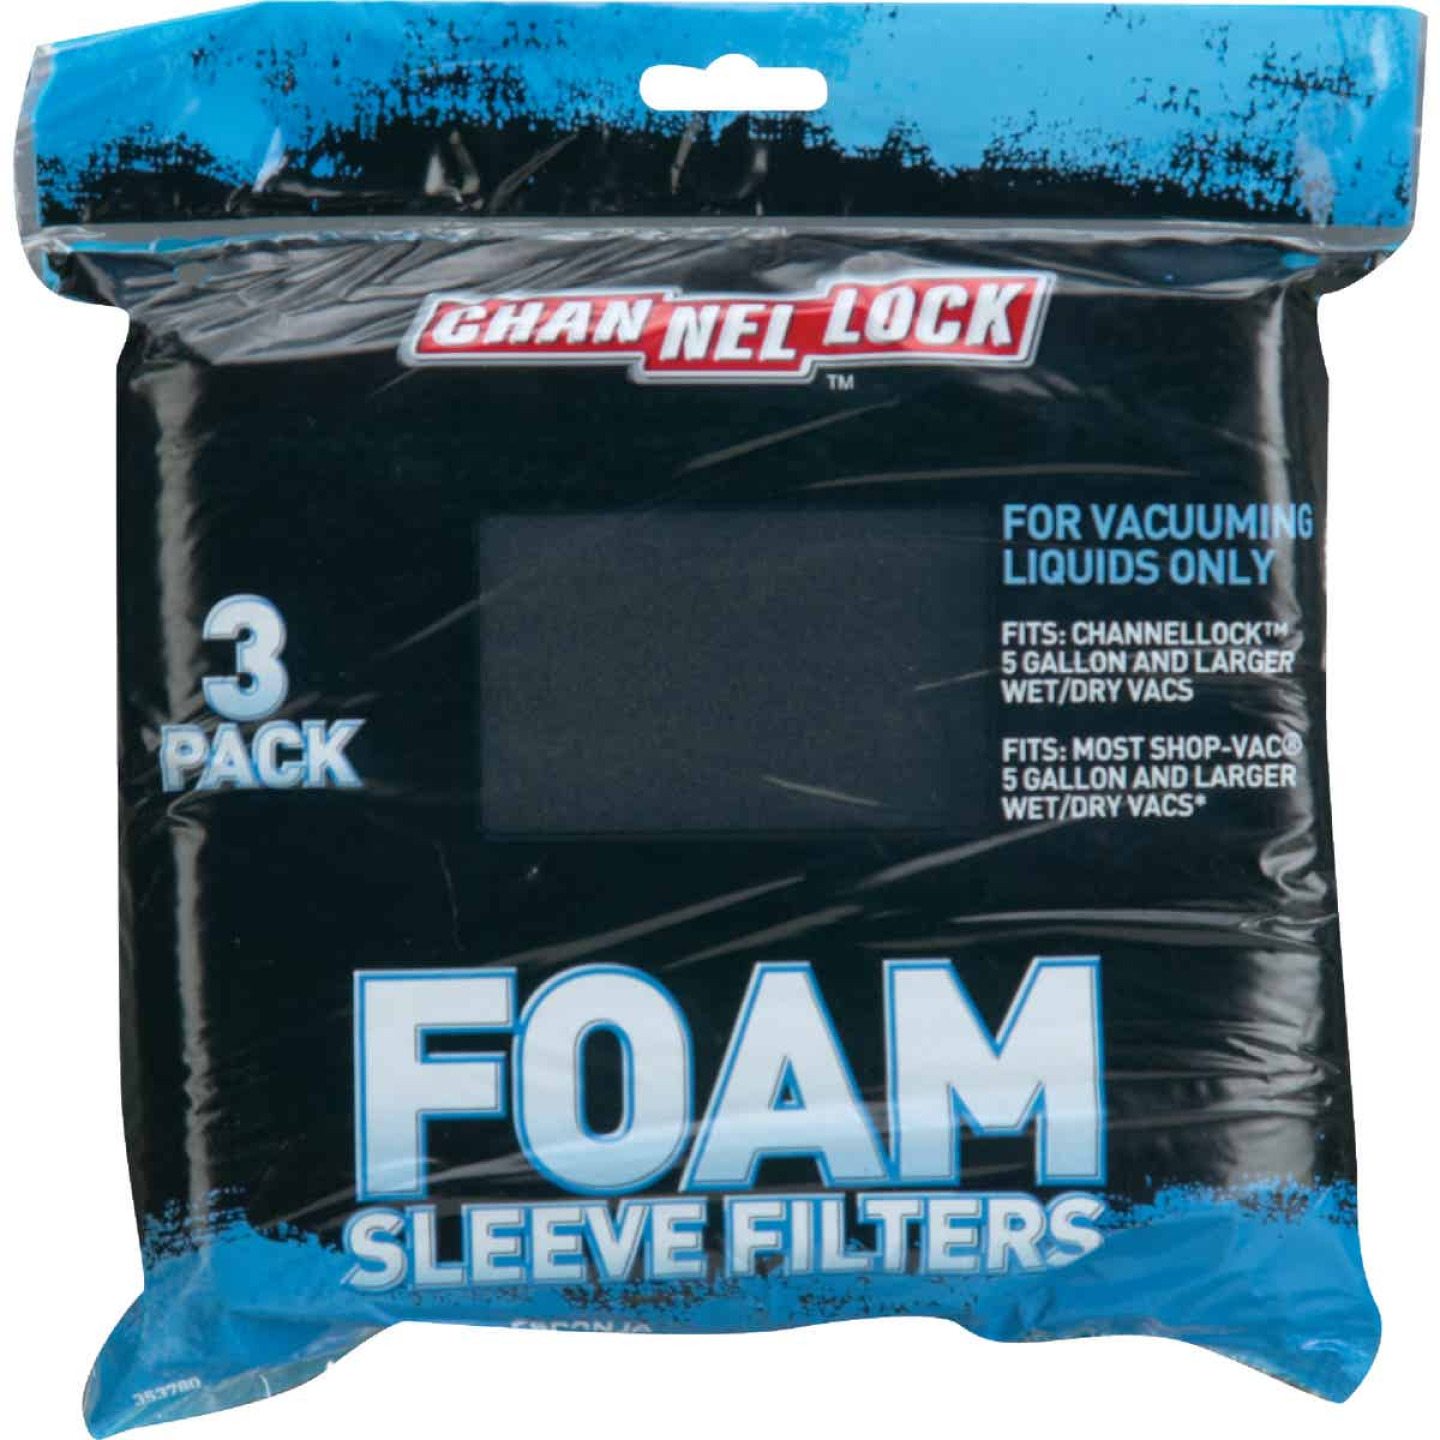 Channellock Foam Standard 5 to 16 Gal. Vacuum Filter Image 2